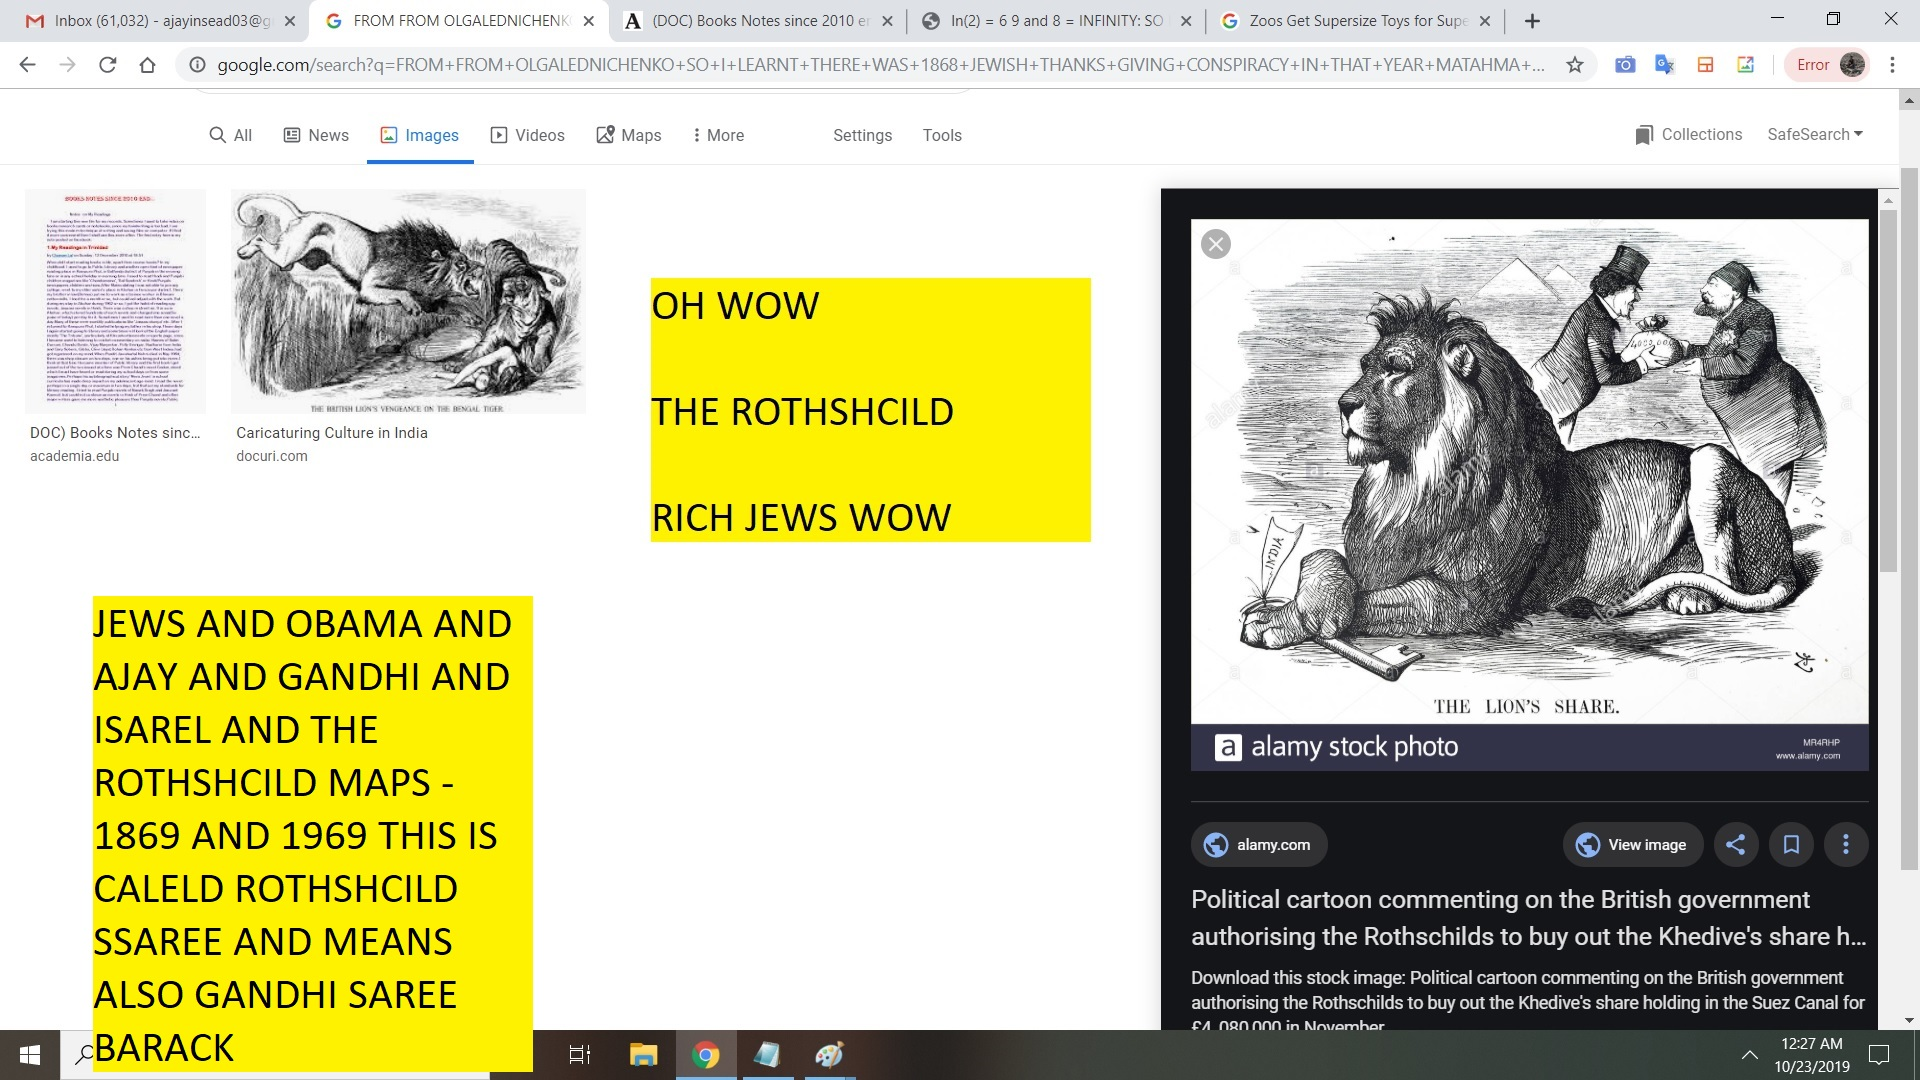 JEWS AND OBAMA AND AJAY AND GANDHI AND ISAREL AND THE ROTHSHCILD MAPS - 1869 AND 1969 THIS IS CALELD ROTHSHCILD SSAREE AND MEANS ALSO GANDHI SAREE BAARCK